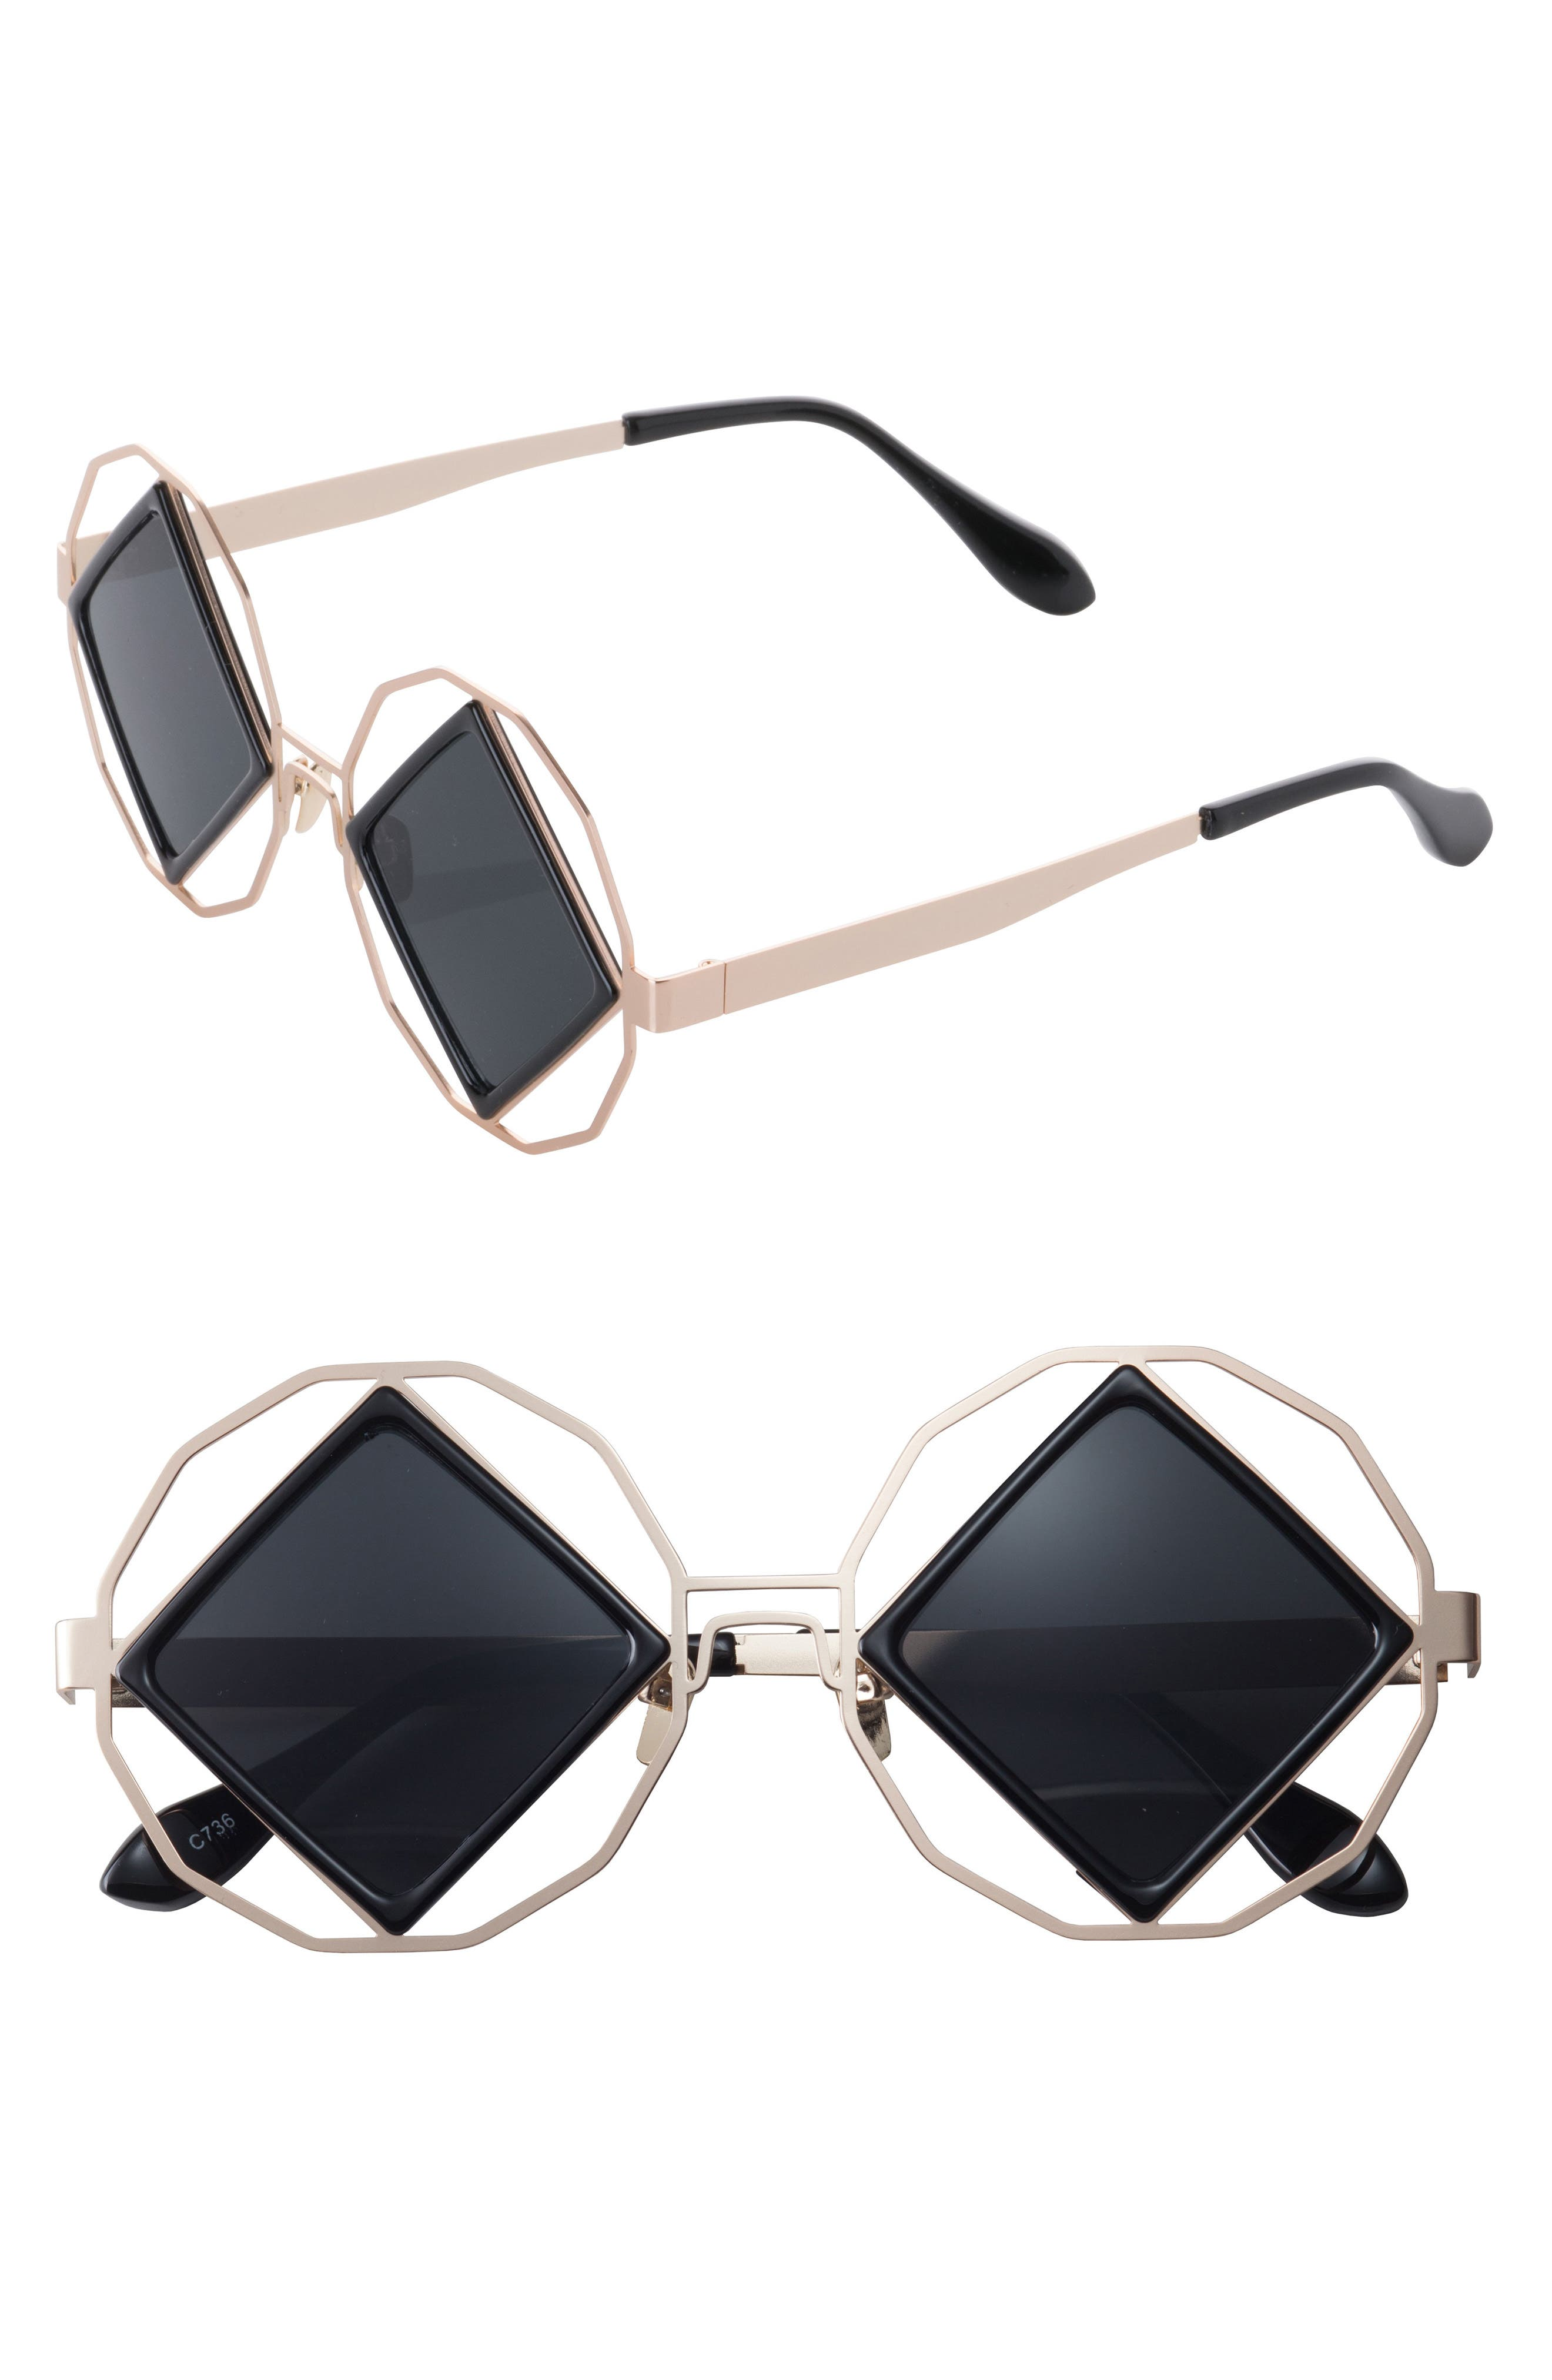 Garnet 58mm Geometric Sunglasses,                             Main thumbnail 1, color,                             Black/ Gold